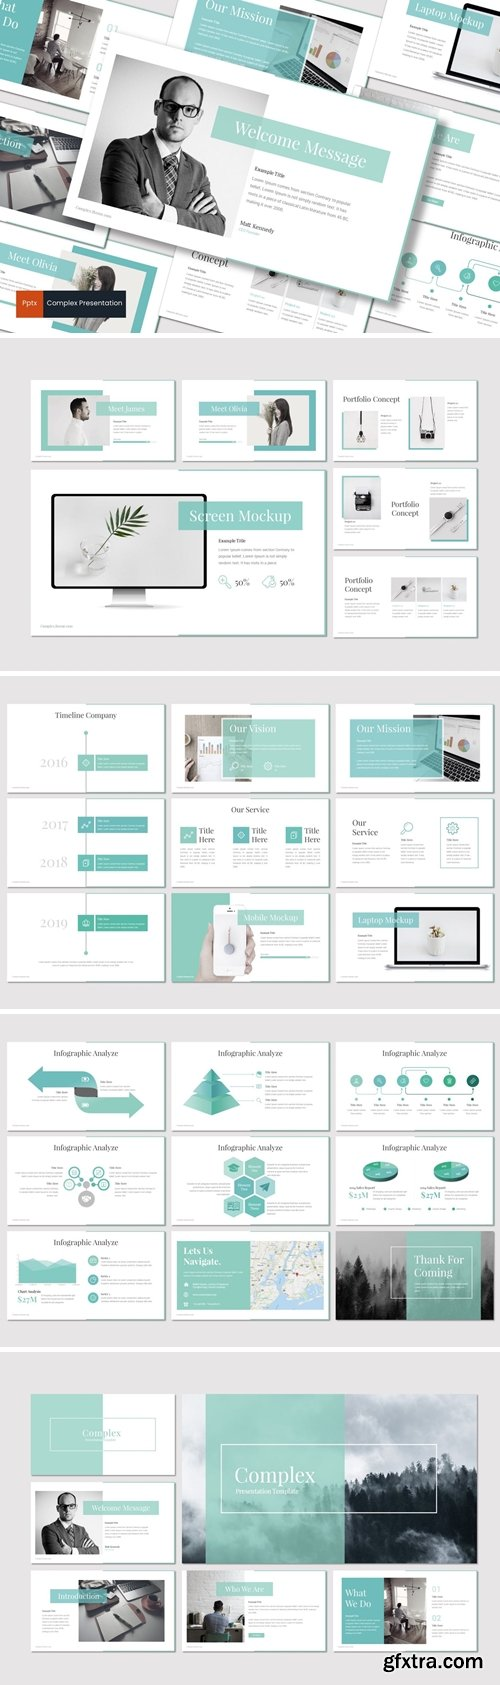 Complex Powerpoint, Keynote and Google Slides Templates